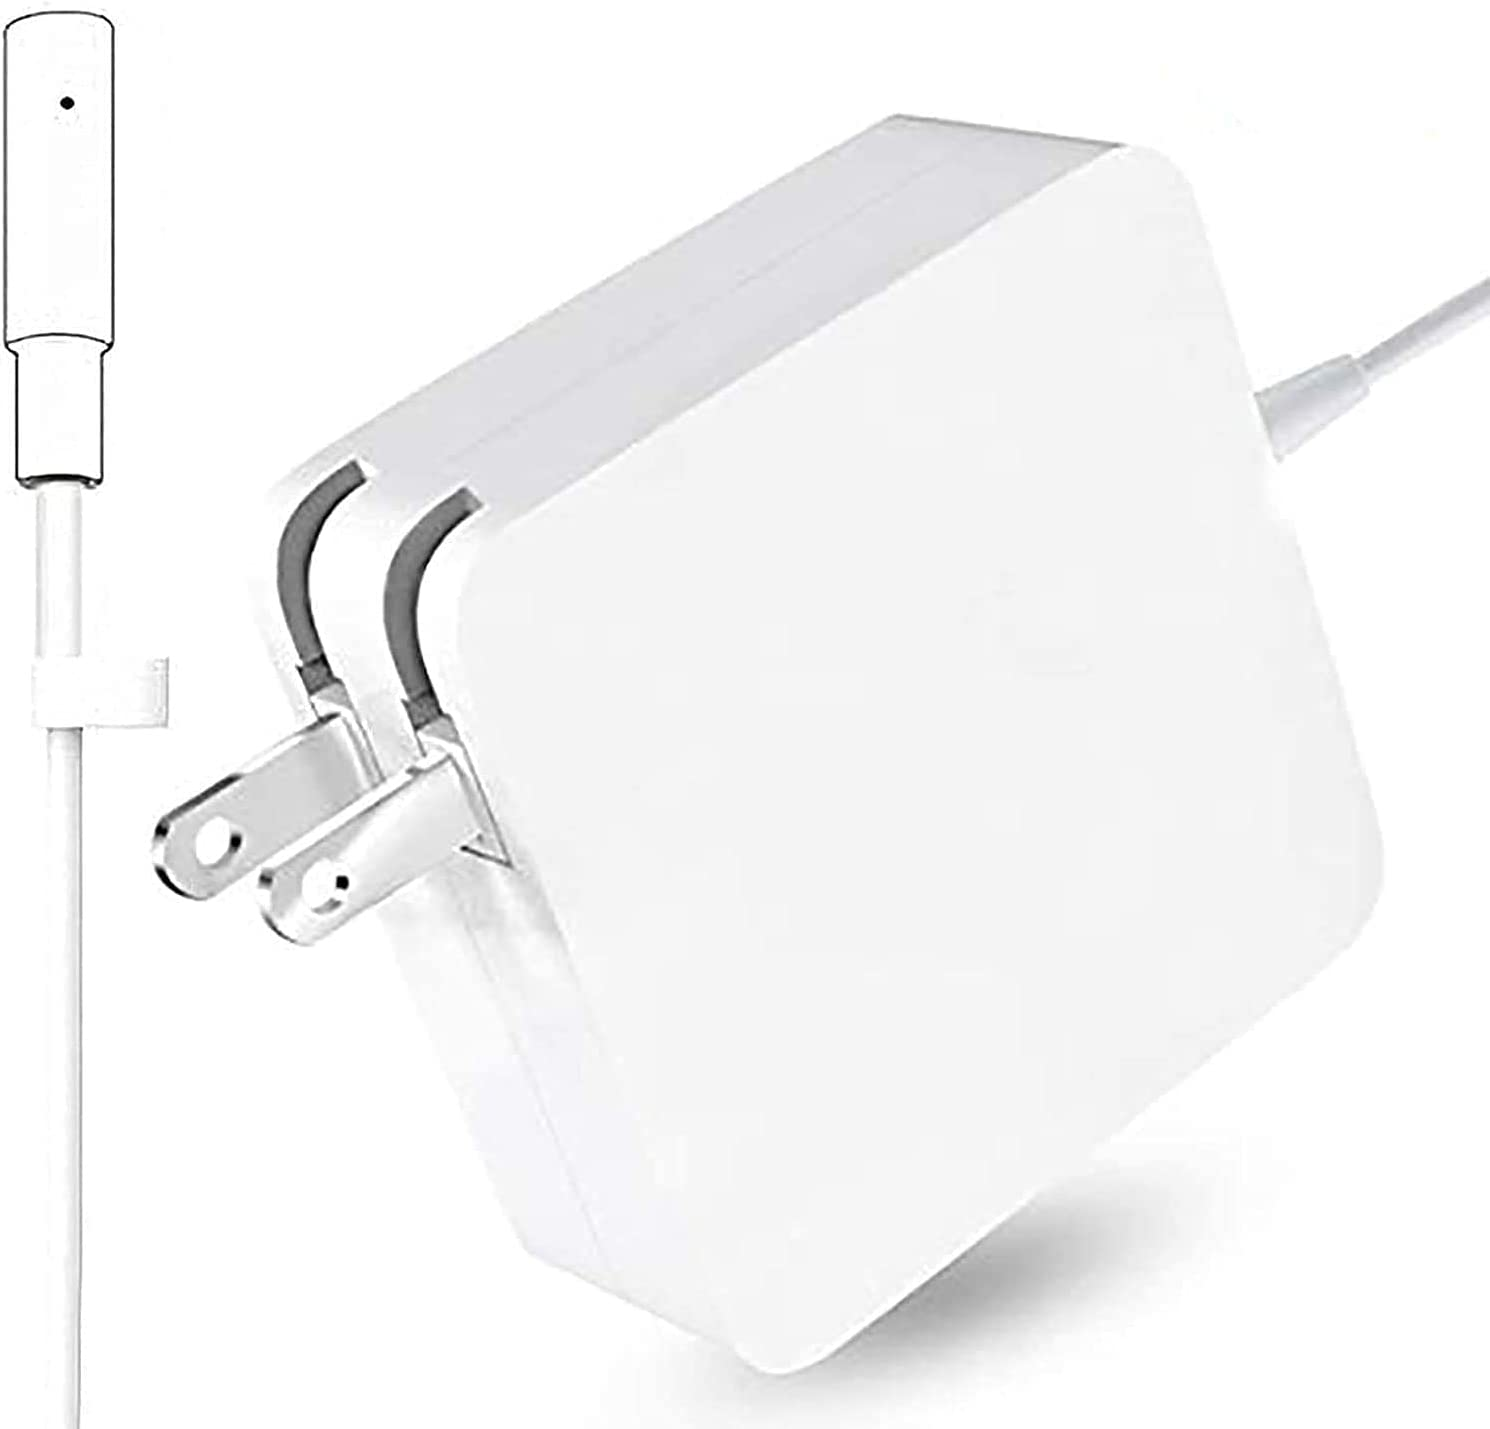 Mac Book Pro Charger, 60W Power Adapter L-Tip Magnetic Connector Charger for Mac Book and 13-inch Mac Book Pro(Before Mid 2012 Models) (A5)